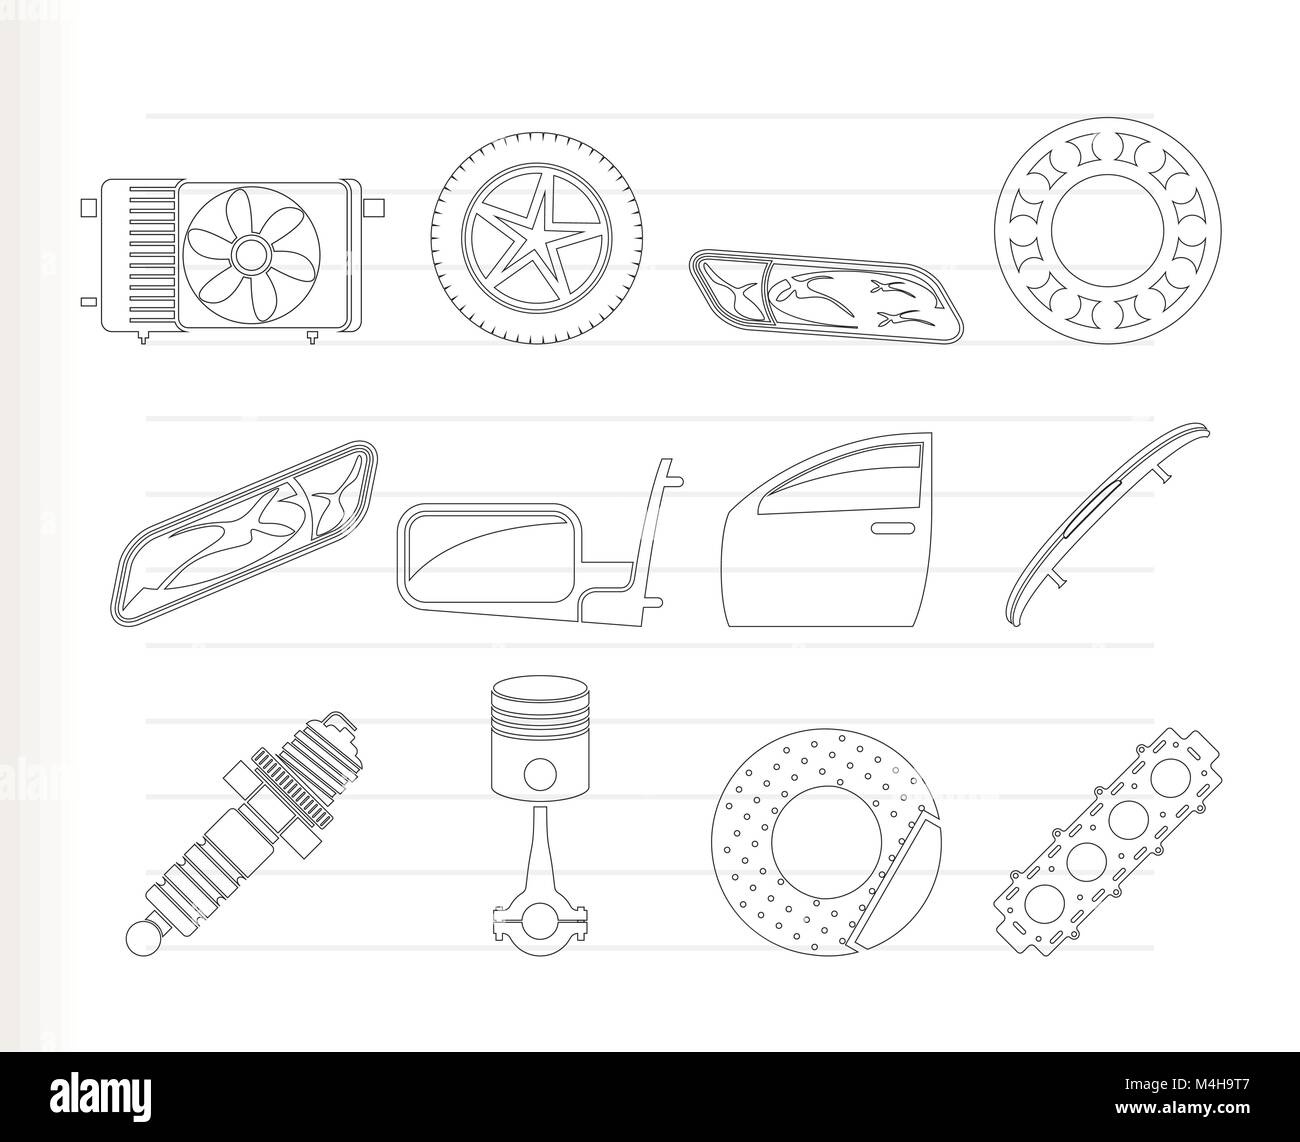 Realistic Car Parts and Services icons - Vector Icon Set 1 Stock Vector